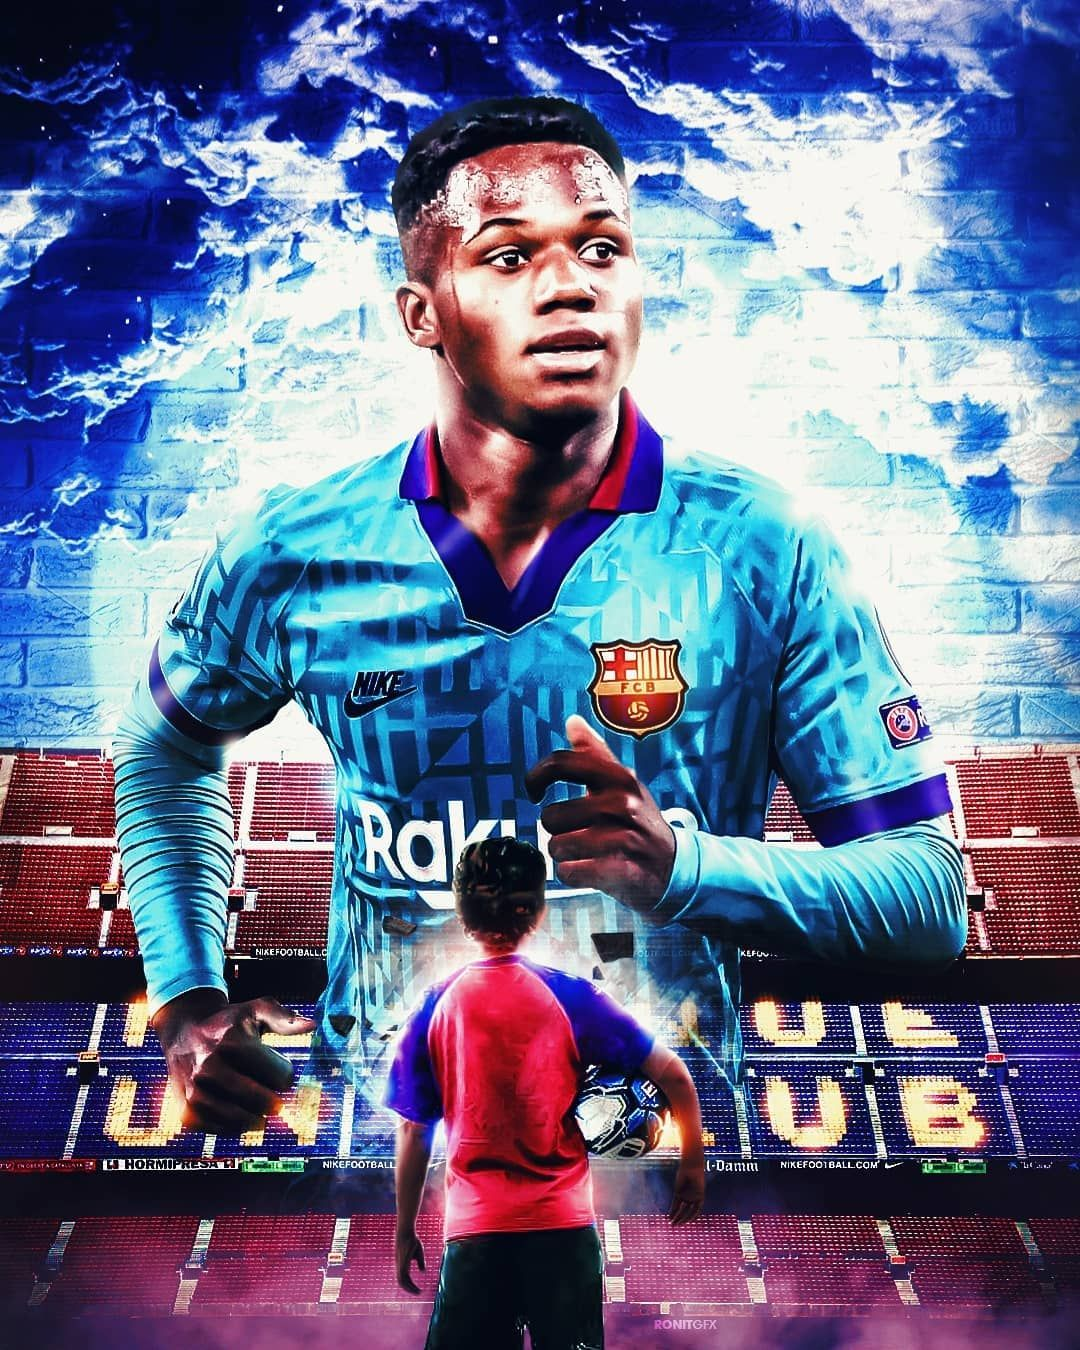 261 Mentions J Aime 0 Commentaires Football Wallpapers Ronit Gfx Sur Instagram Ansufati Young Kid Go In 2020 Football Wallpaper Messi Vs Messi Vs Ronaldo